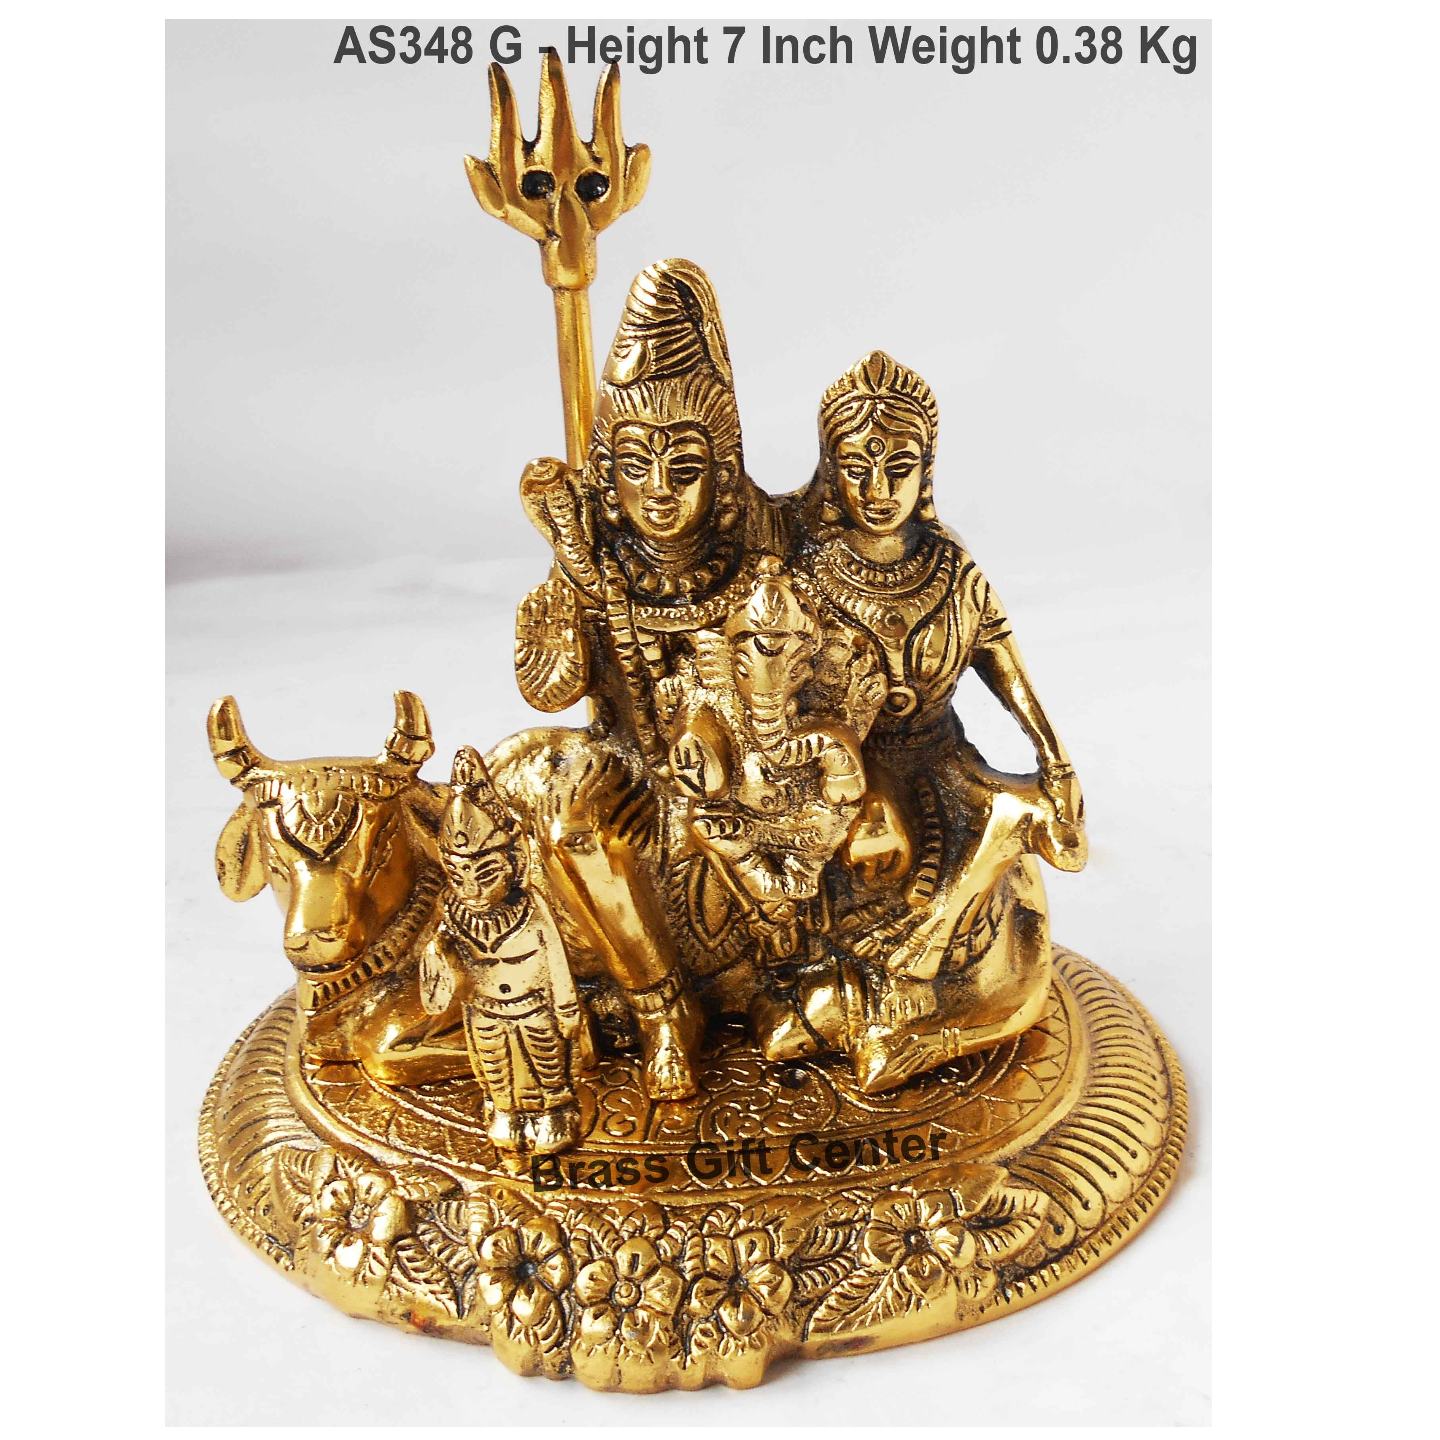 Shiv Parivar Statue in Gold Antique Finish - 7x5.1x7 inch (AS348 G)